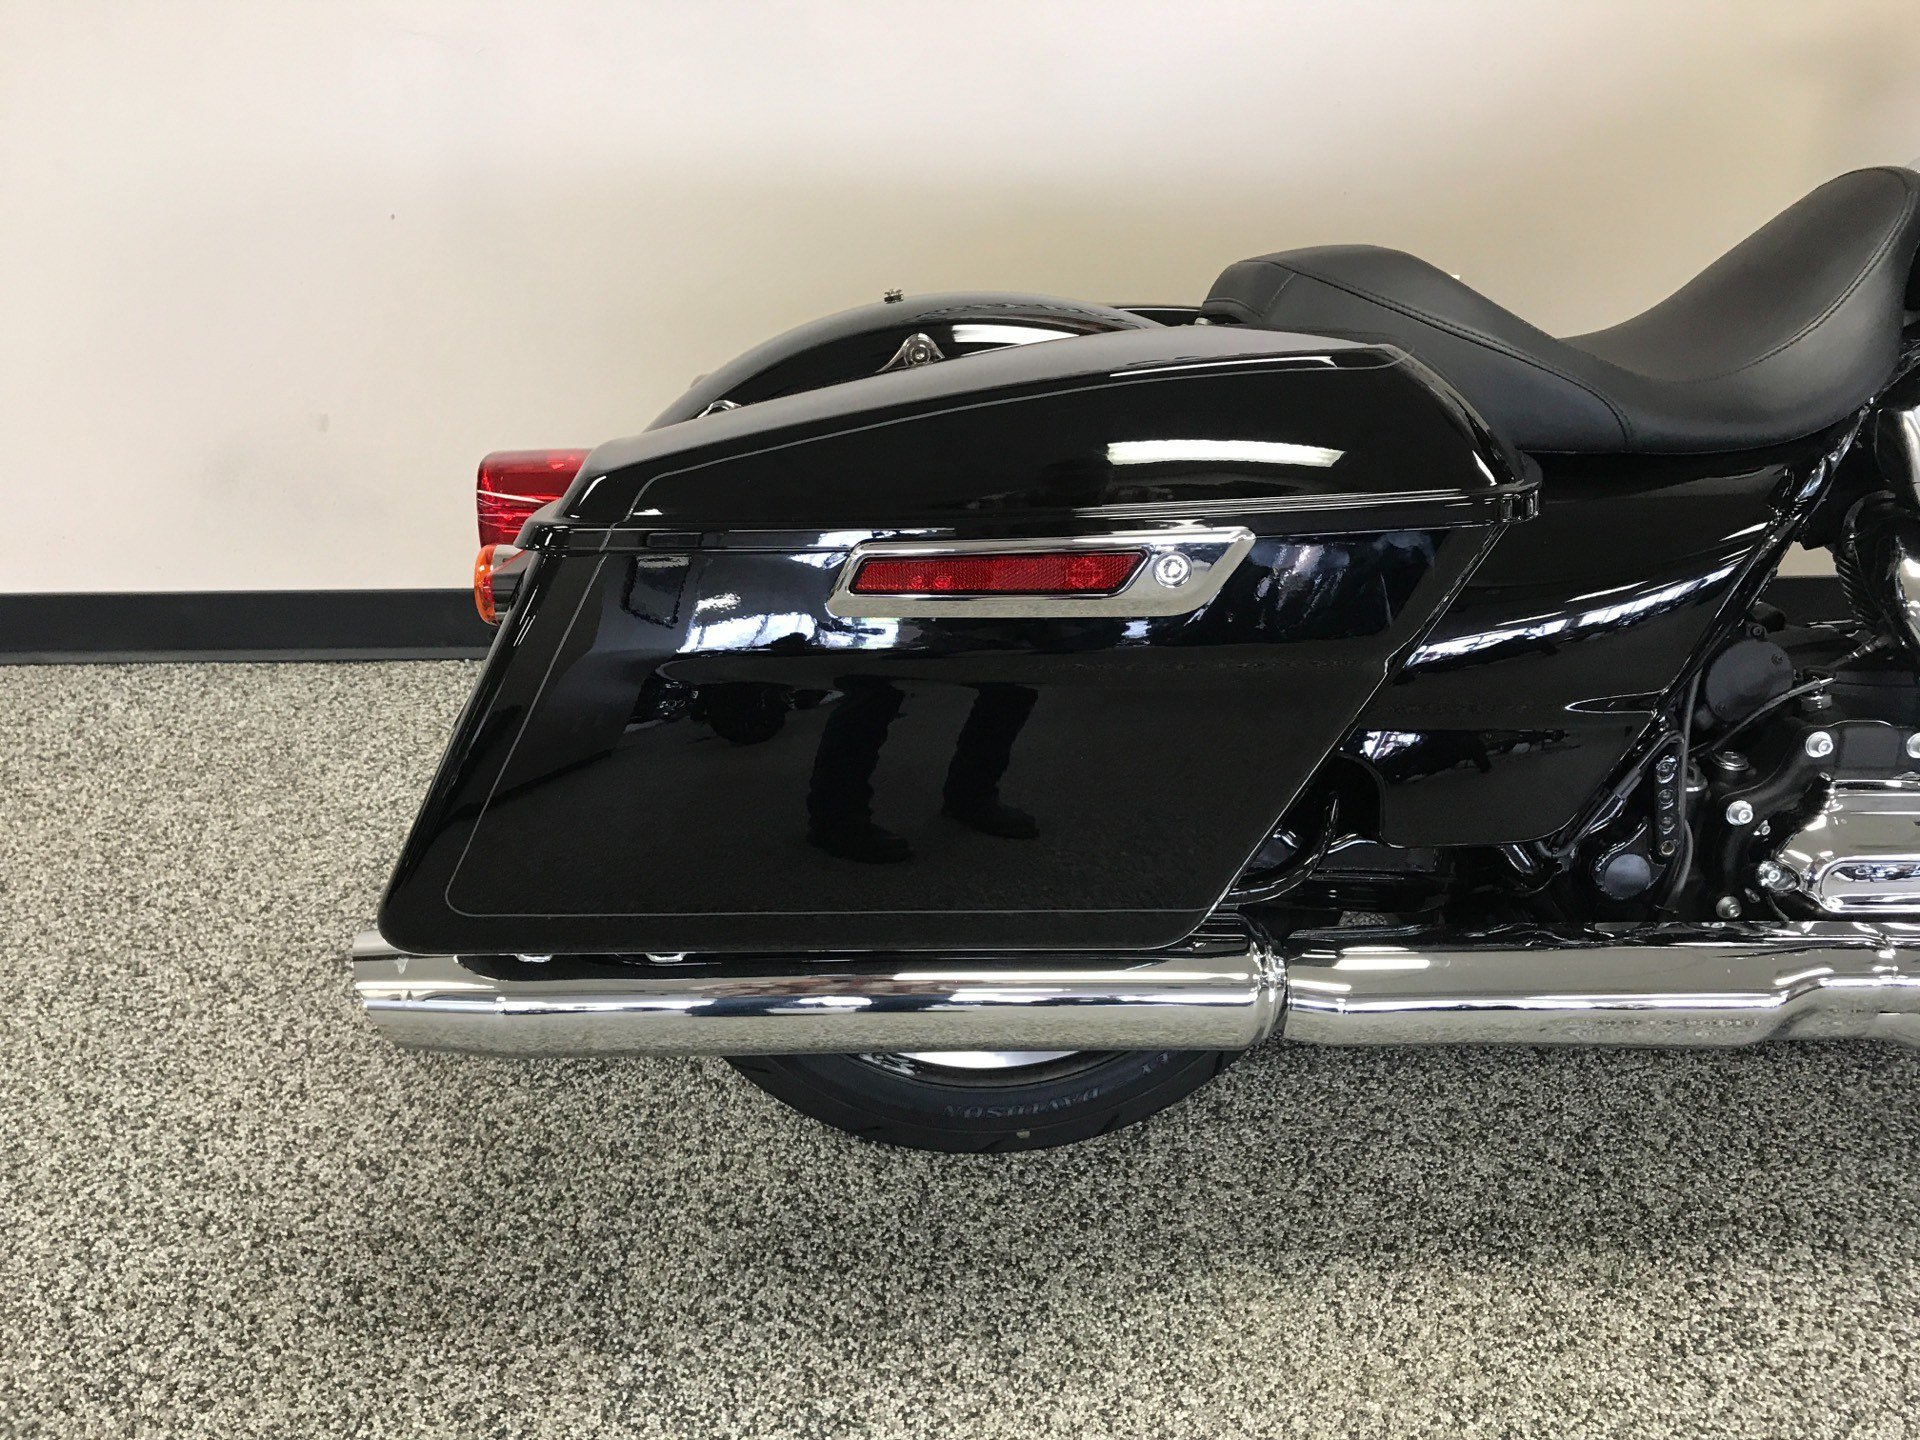 2019 Harley-Davidson Electra Glide® Standard in Knoxville, Tennessee - Photo 3